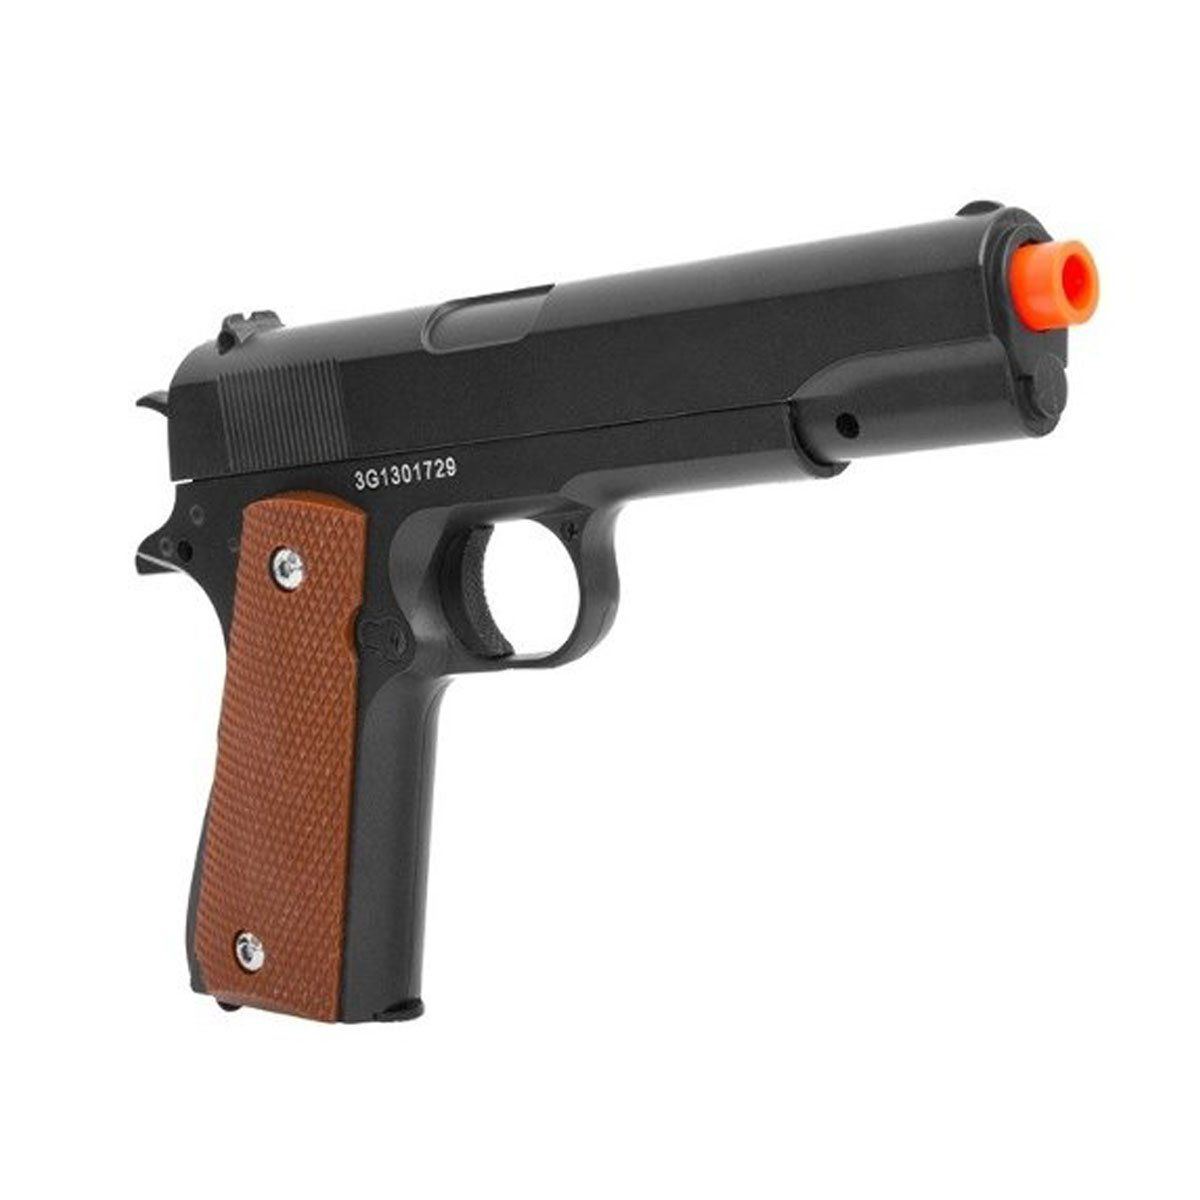 Pistola de airsoft G13 Colt 1911 full metal 6mm + coldre Galaxy